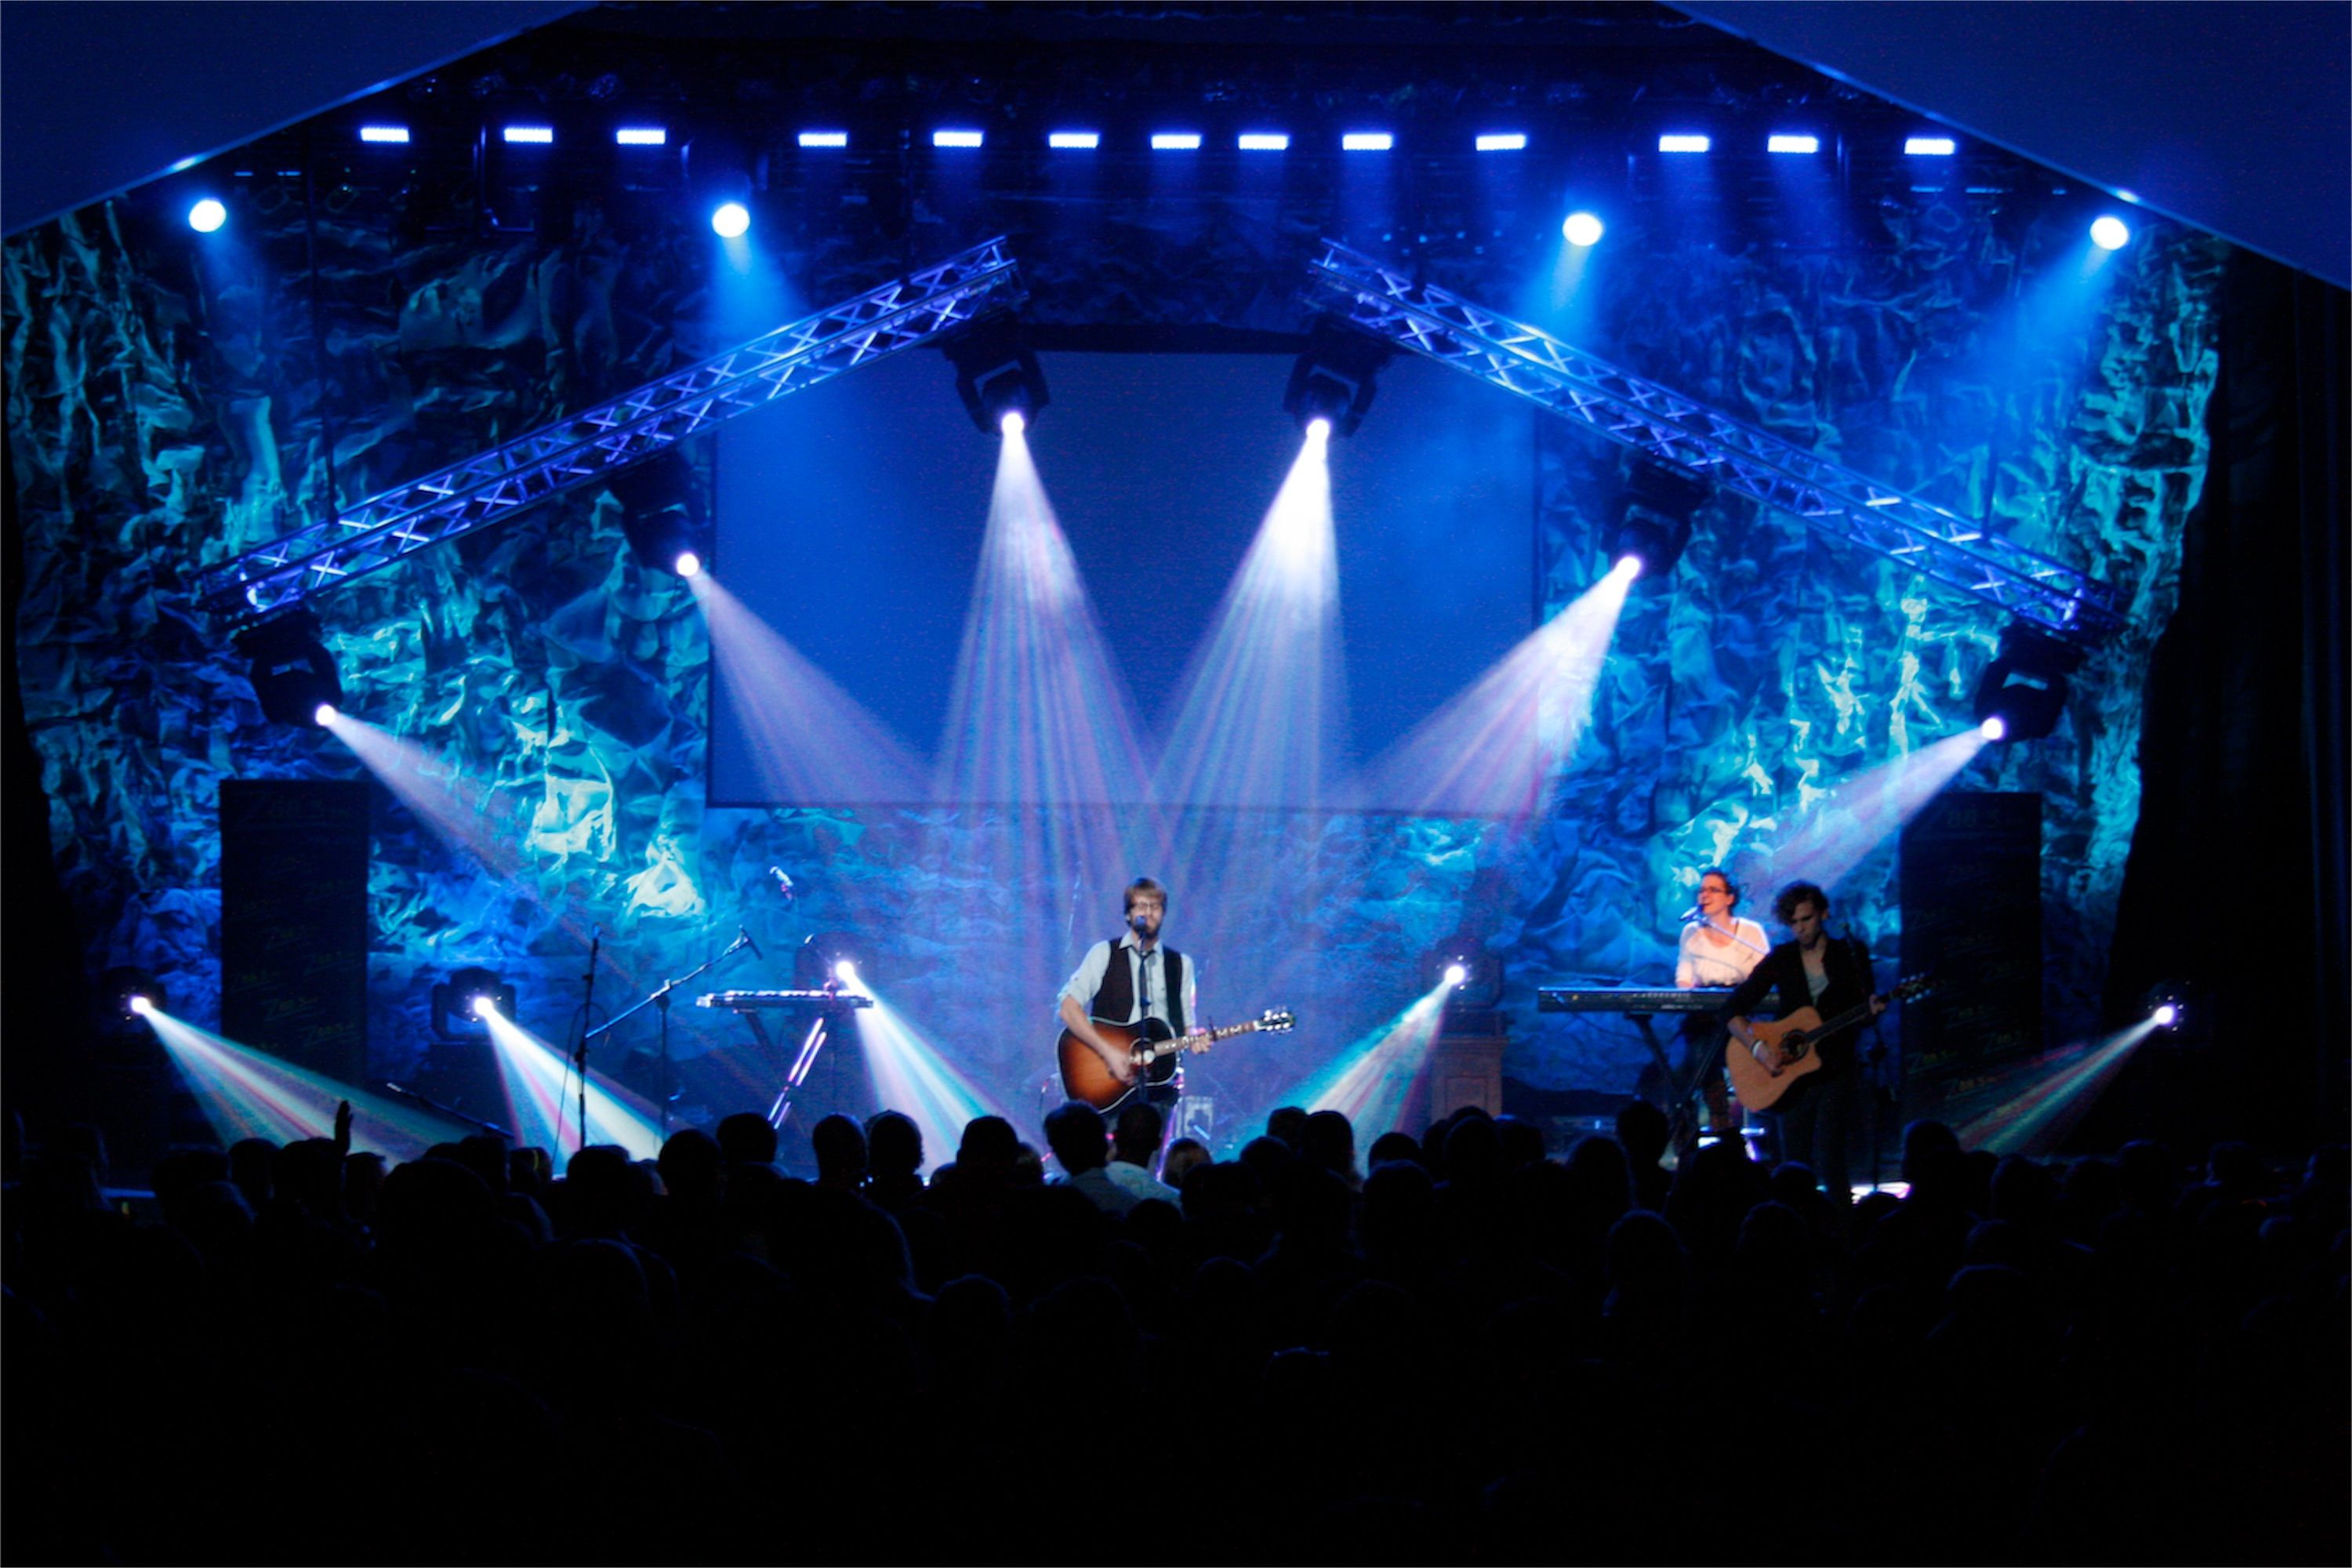 _MG_5087 | Stage design | Pinterest | Church stage, Stage design ... for Concert Stage Lights Background  56bof